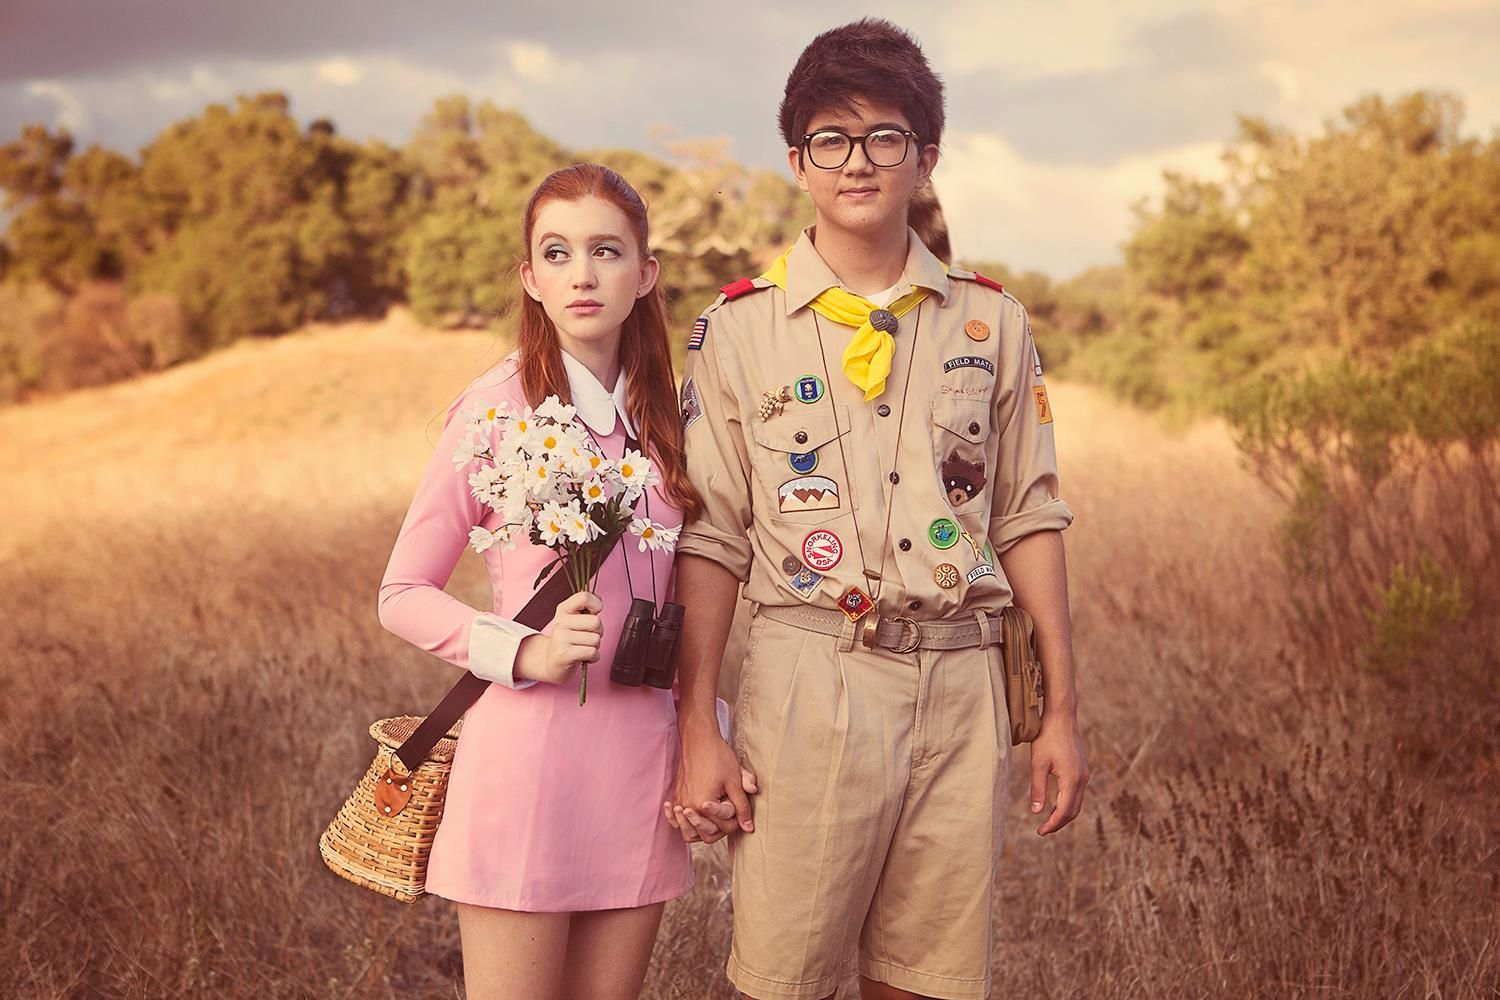 frenchie york suzy bishop dress | wes anderson | pinterest